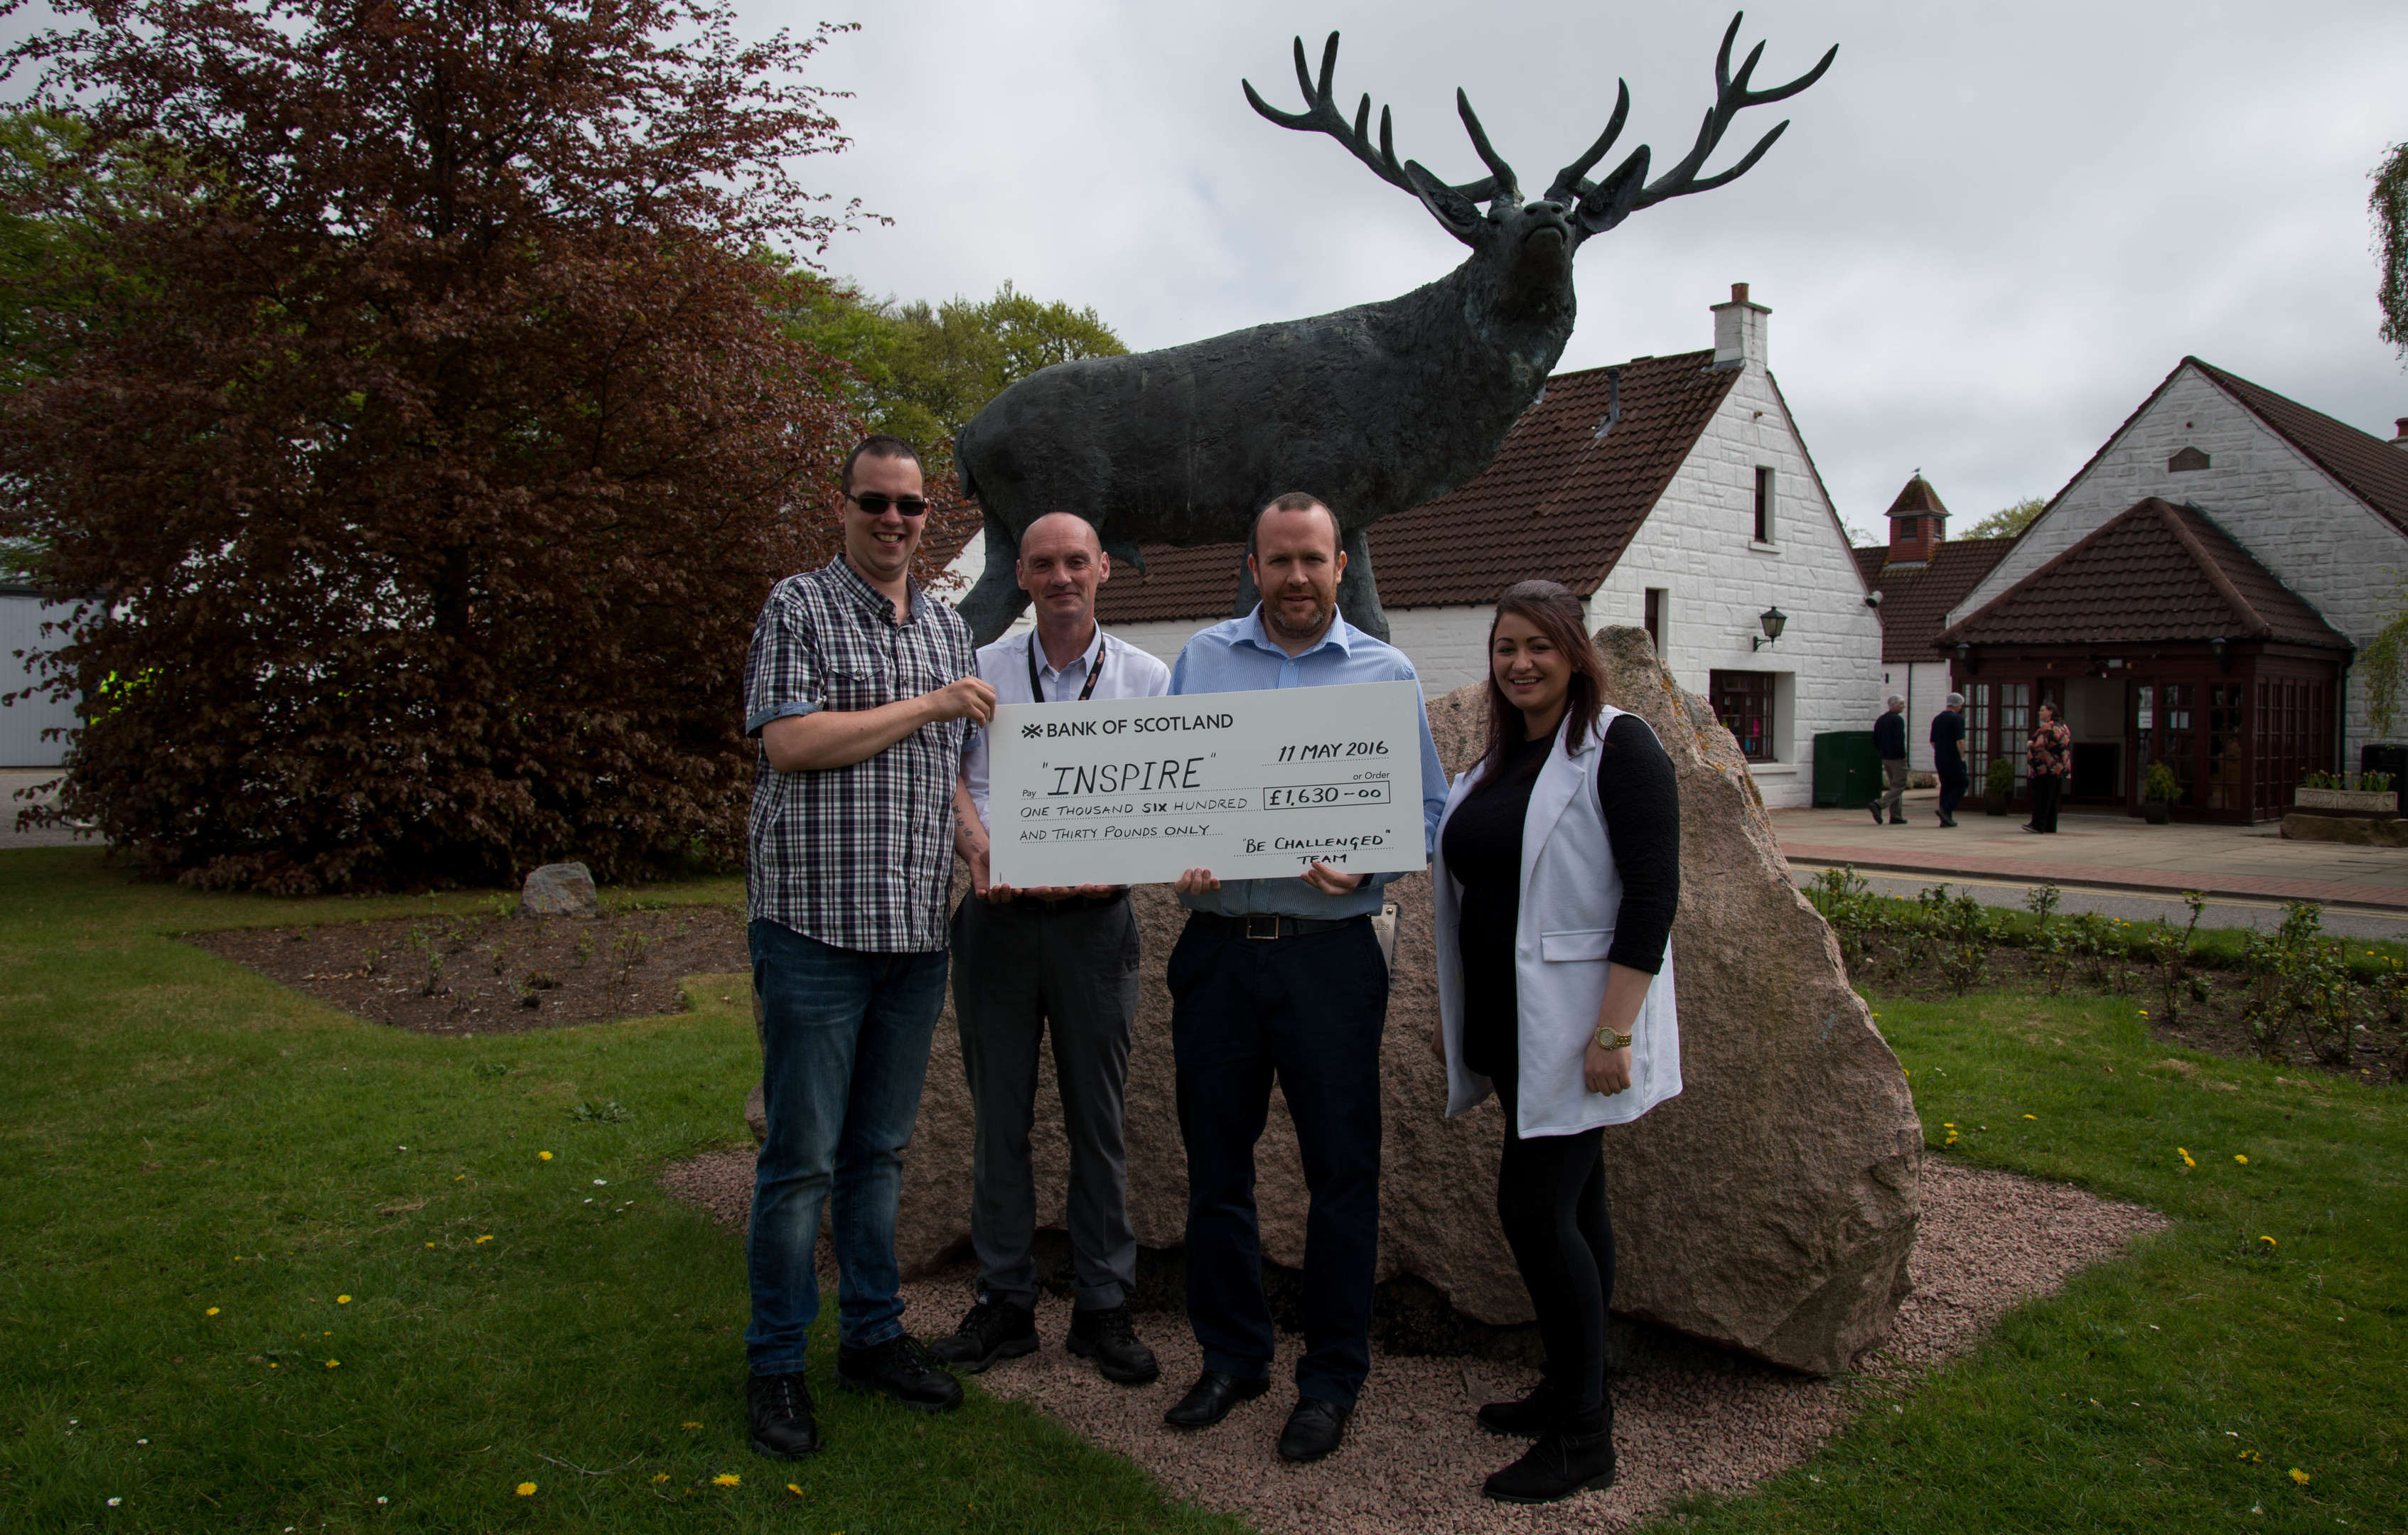 Pictured: James Vann, Baxters; Allan Cameron, Baxters; Andrew Reid, Inspire; and Terri-Jayne Cameron, Baxters